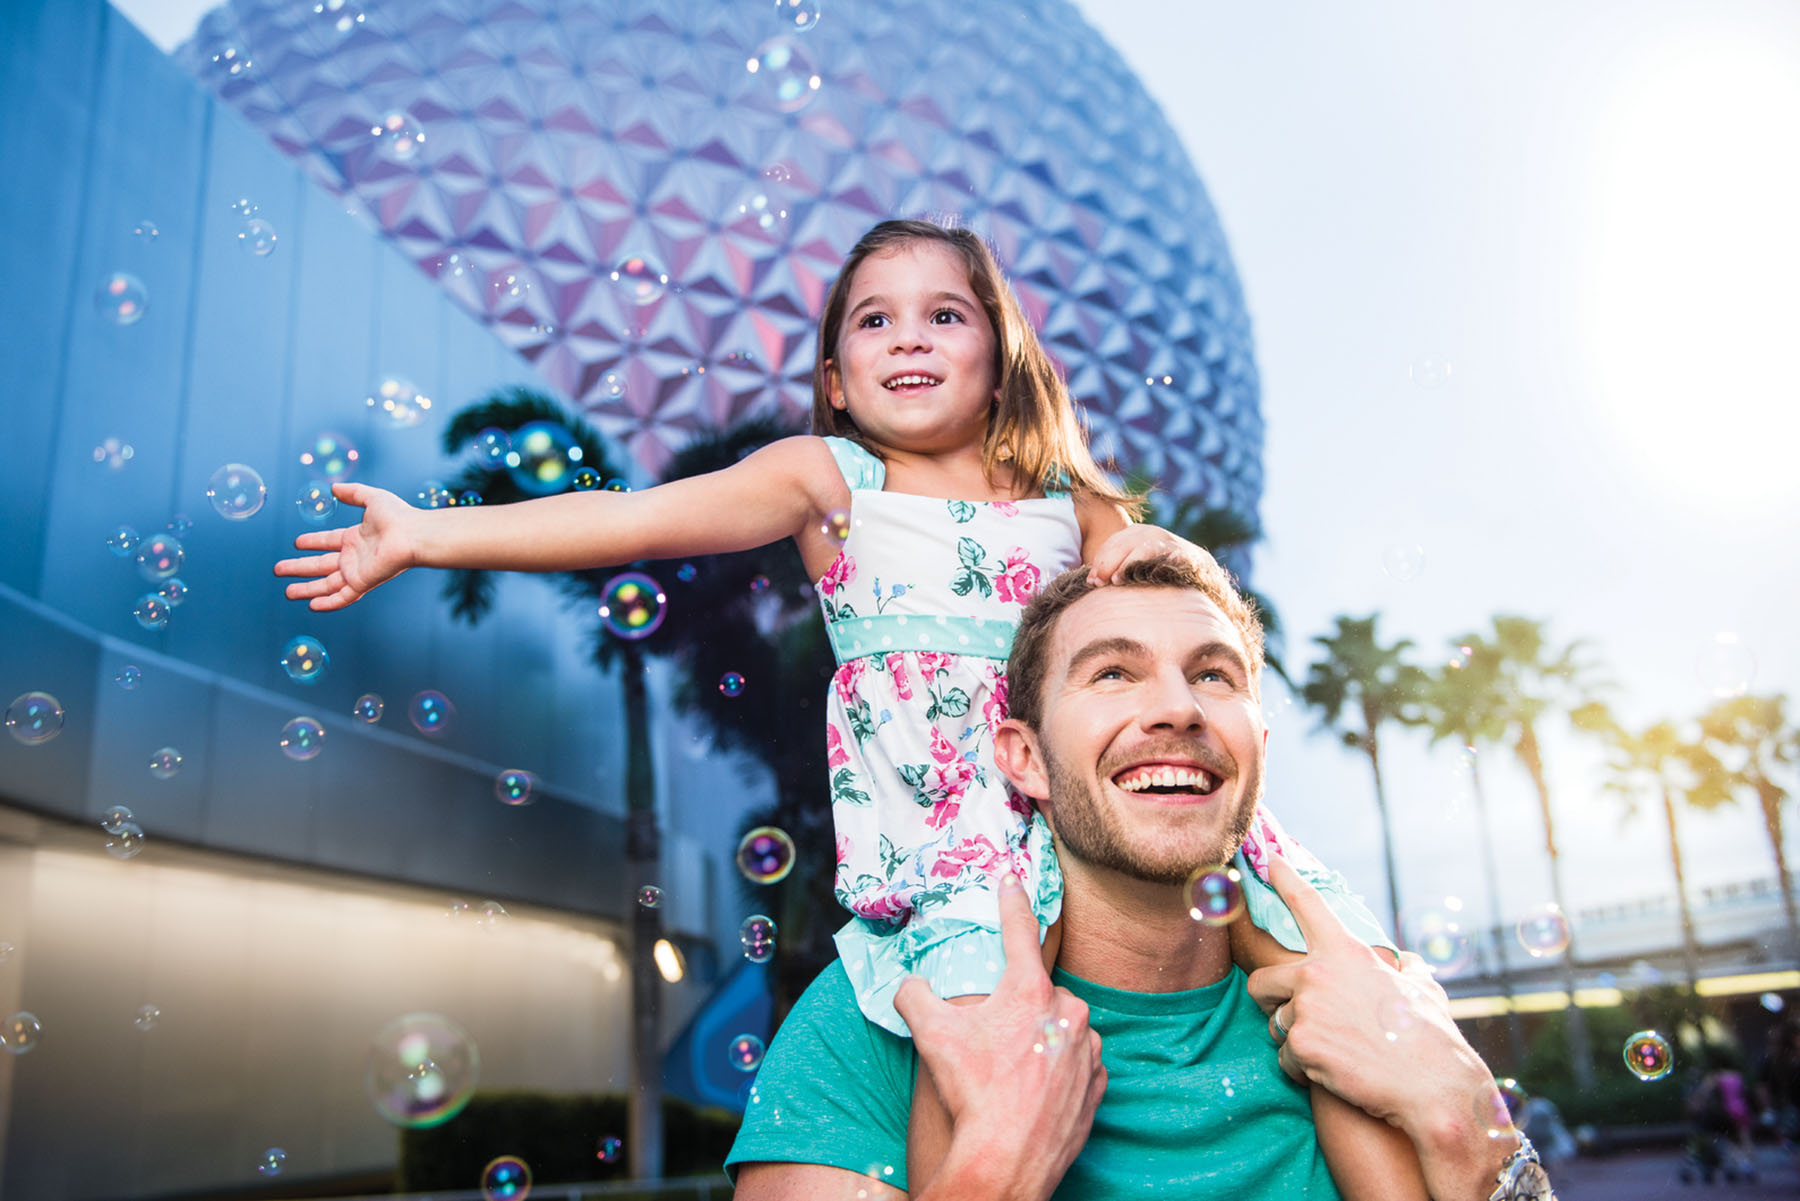 A father walks through Epcot with his daughter on his shoulders